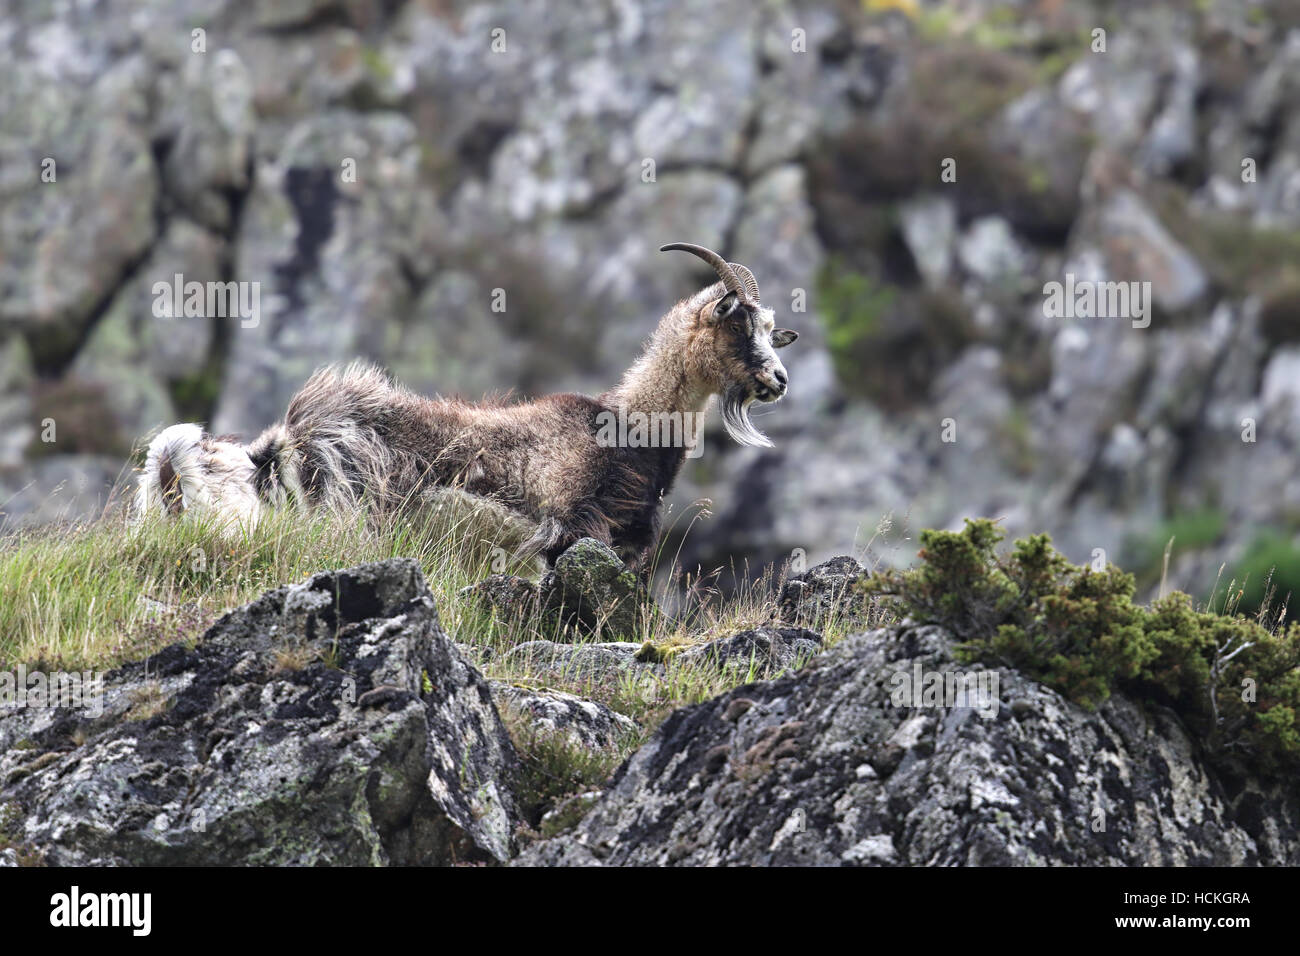 Wild British Primitive Goats also know as Wild Feral Goats. Taken in Findhorn Valley,  Scotland. - Stock Image